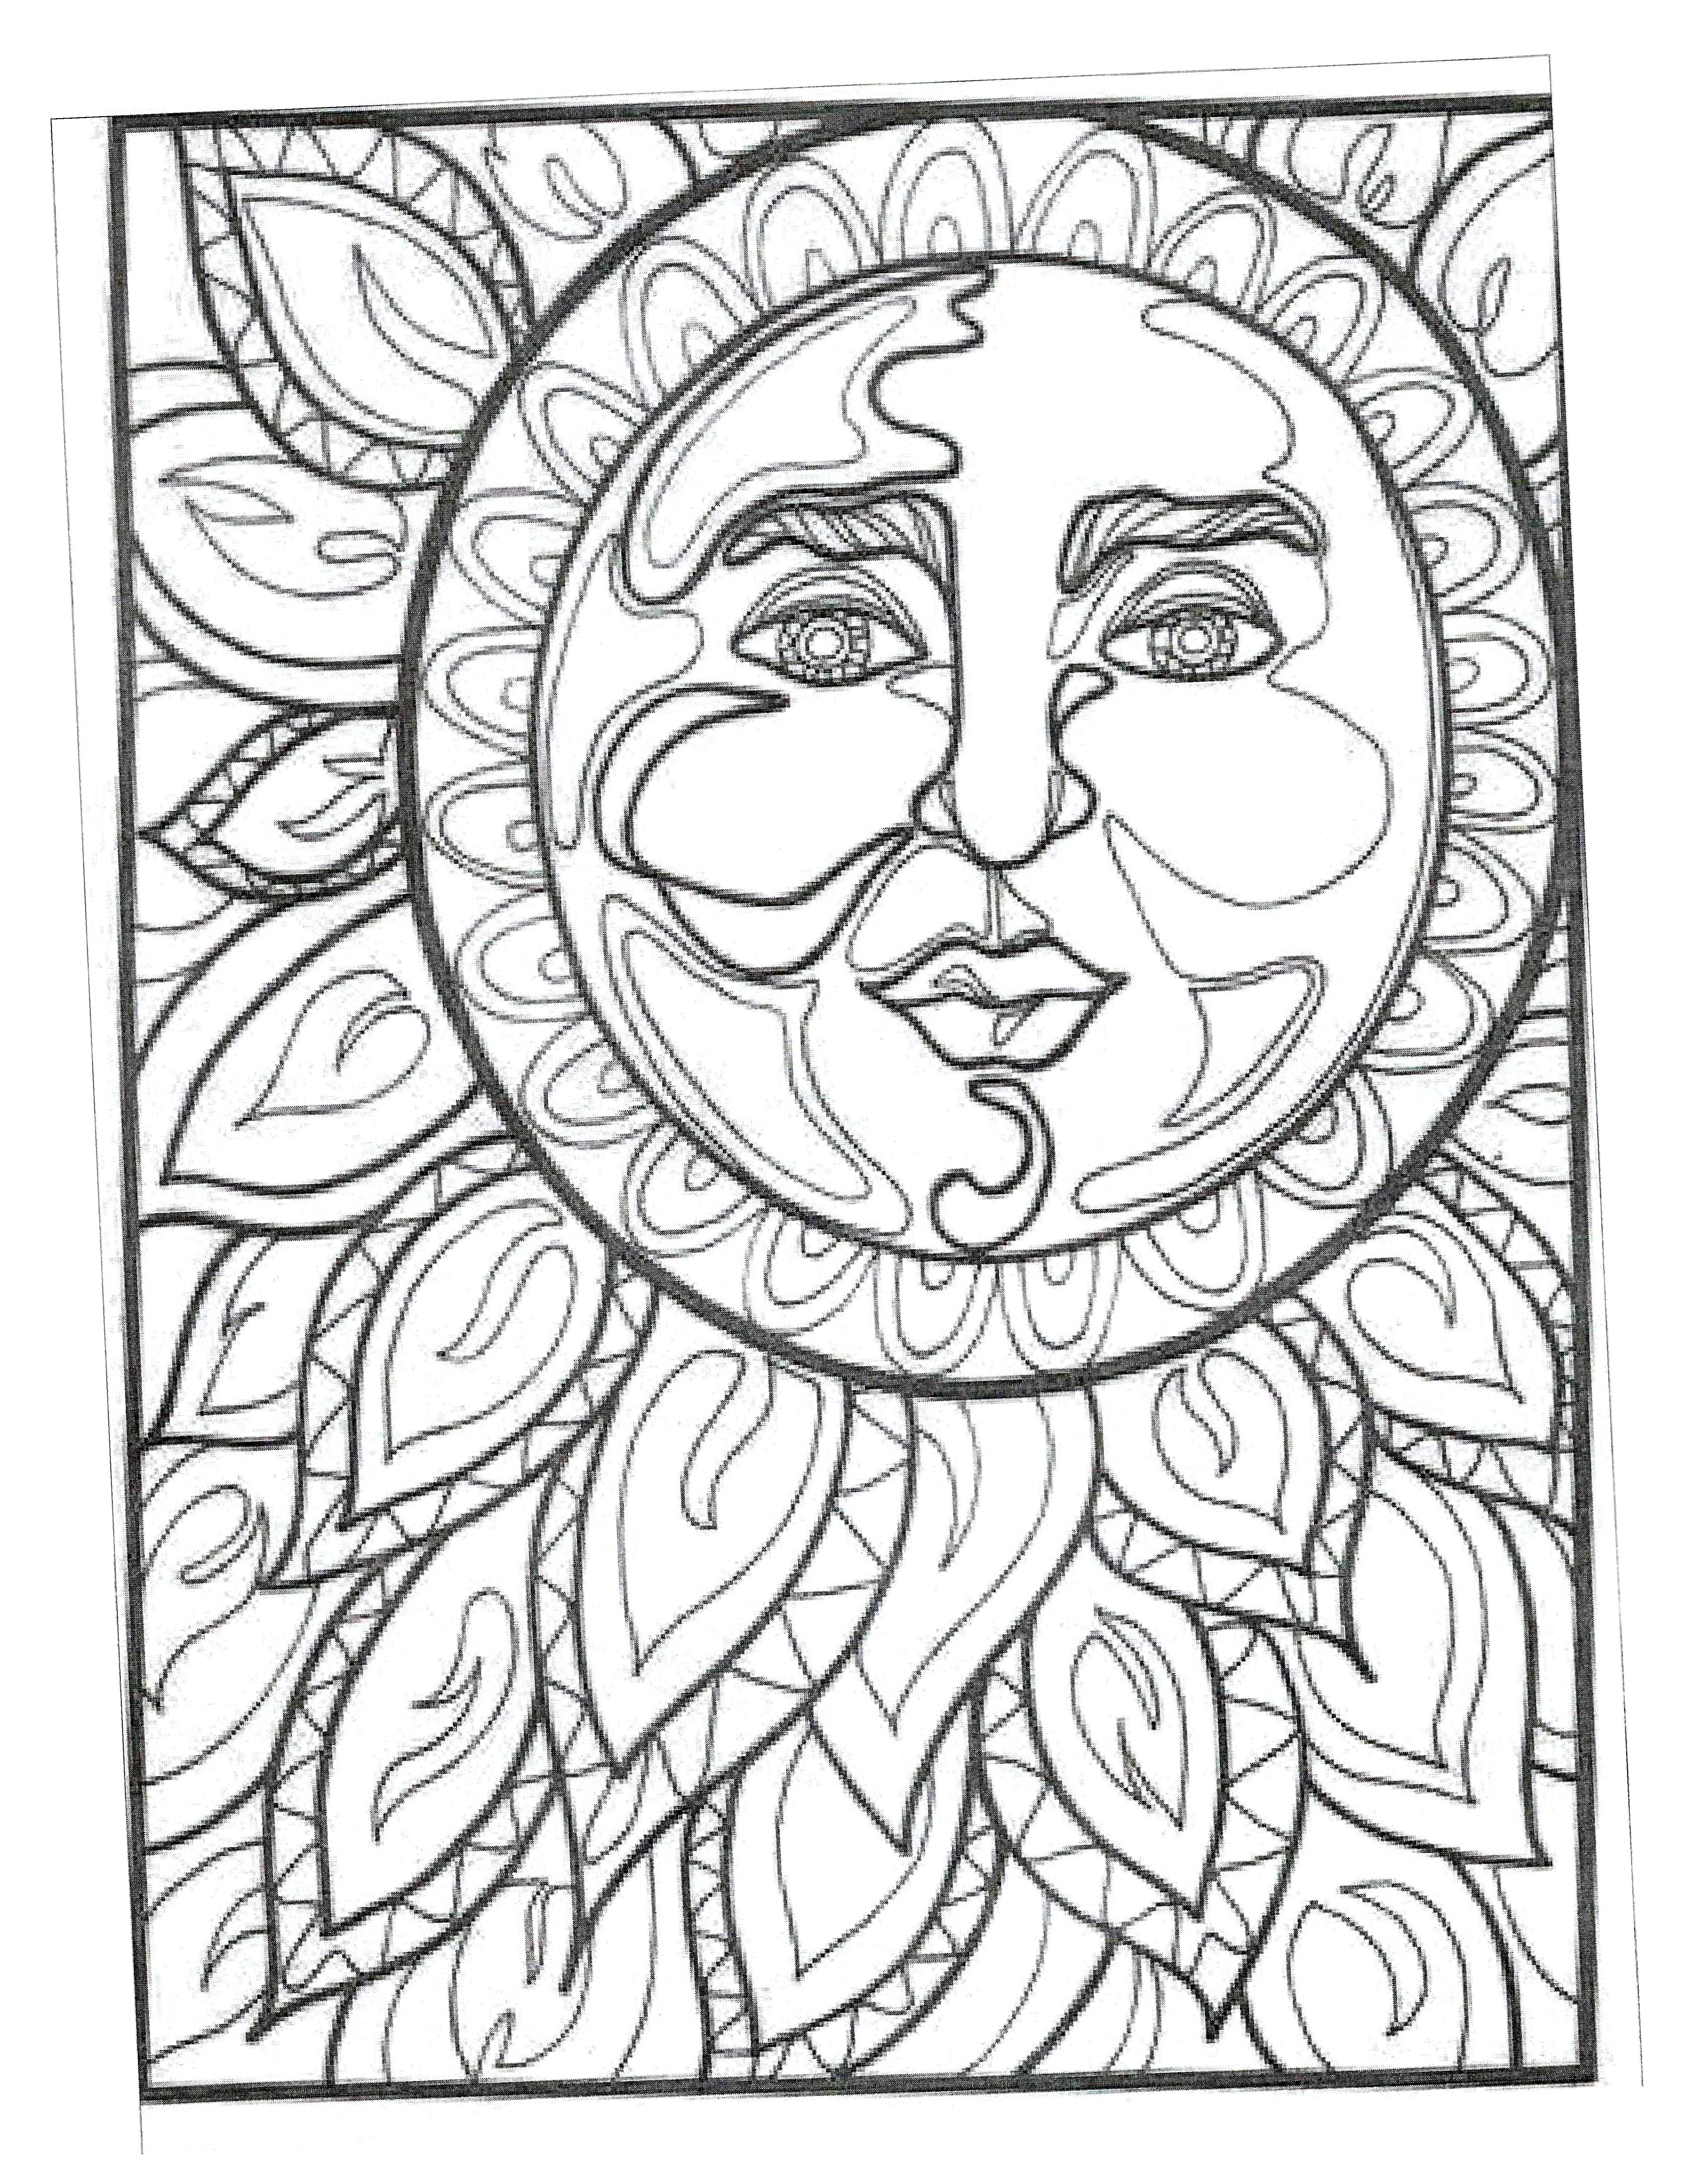 Moon Coloring Pages Image By William Mike Groeneveld On